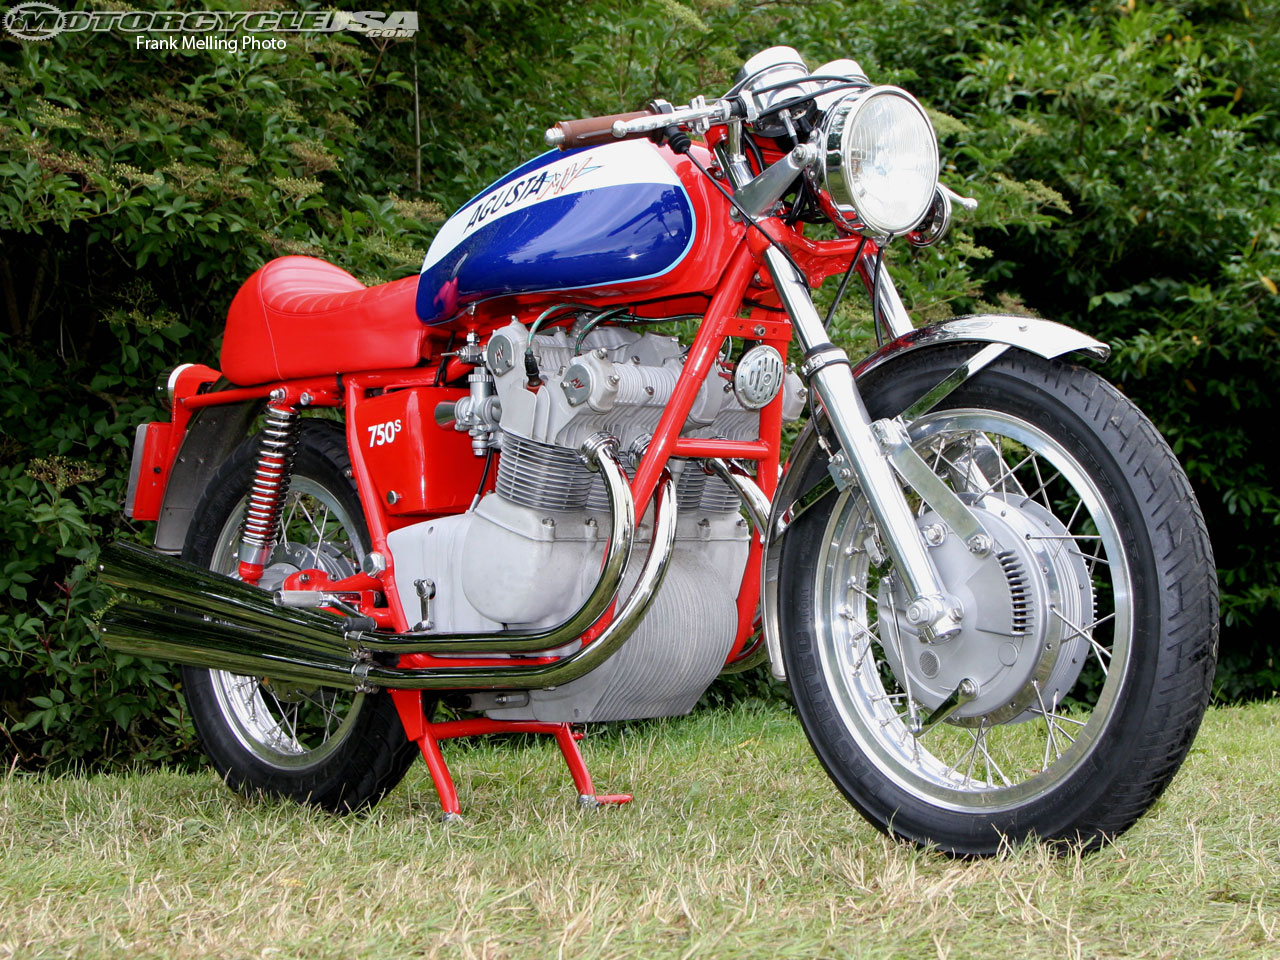 MV Agusta 750 S 1972 images #113235